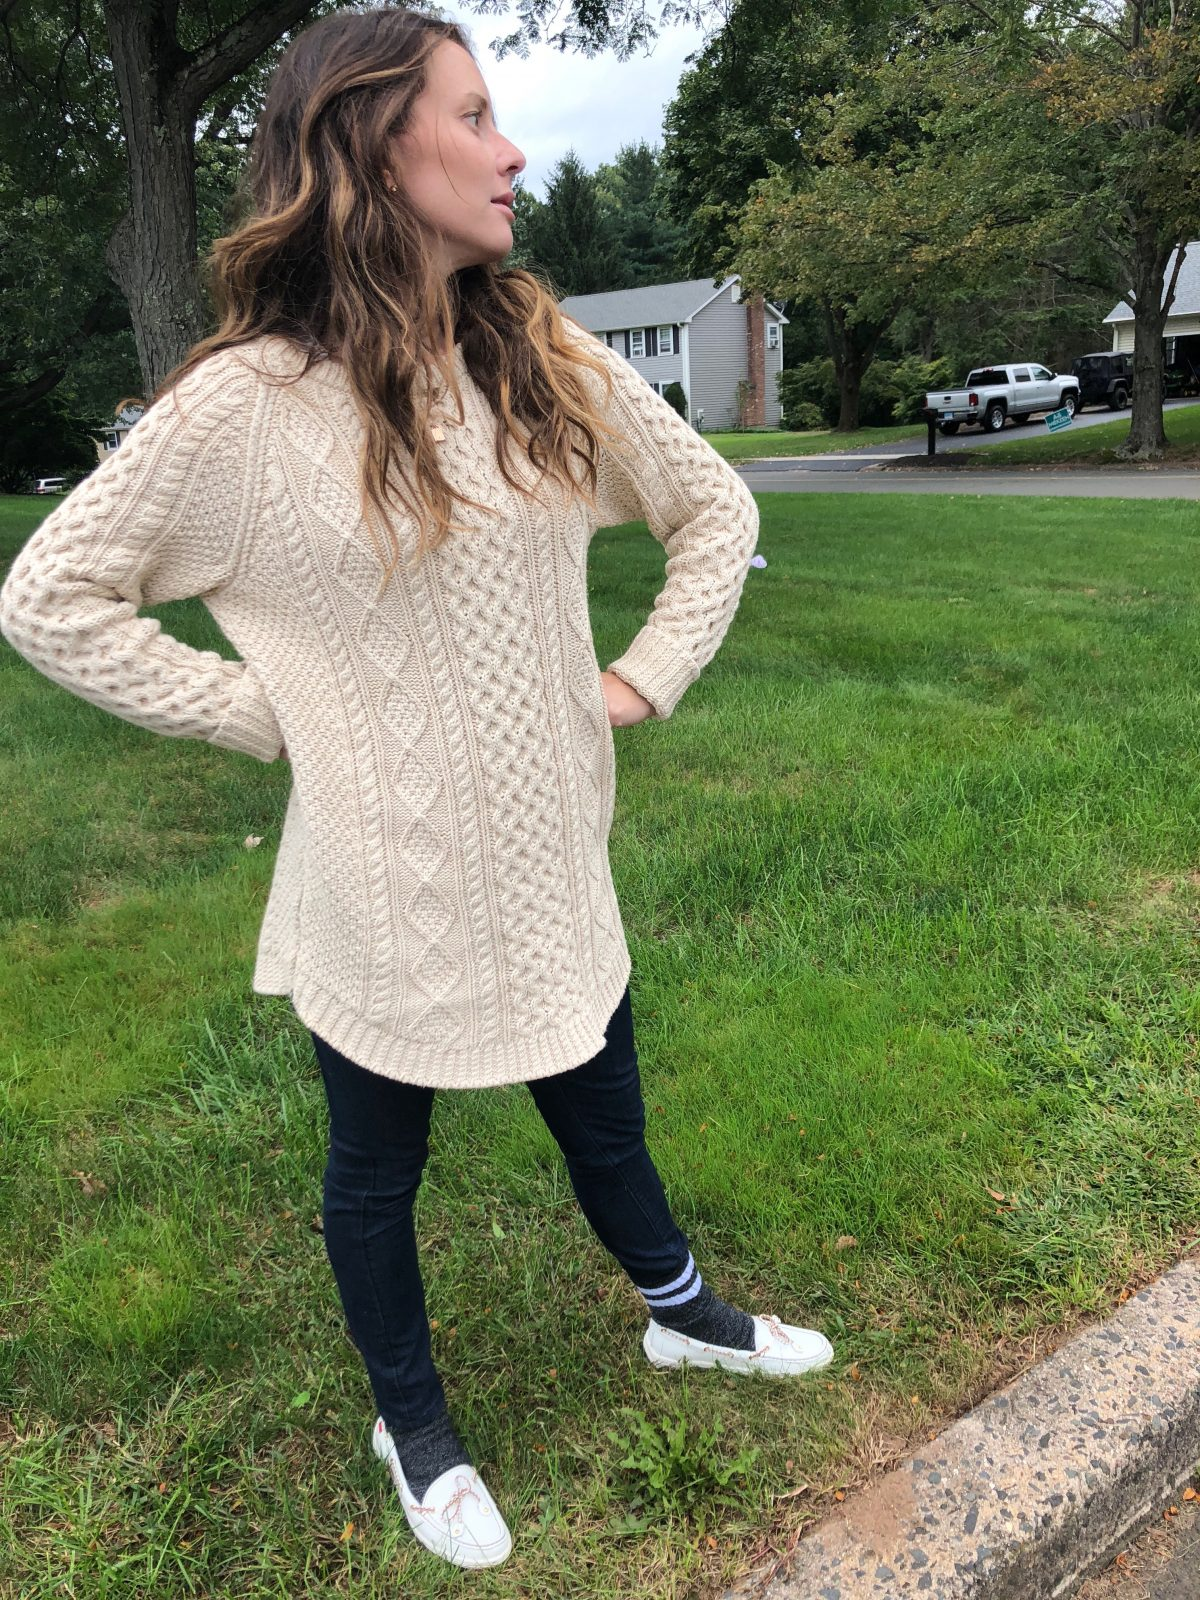 Woman wearing cable knit shirt with leggings socks and loafers on un-mowed lawn